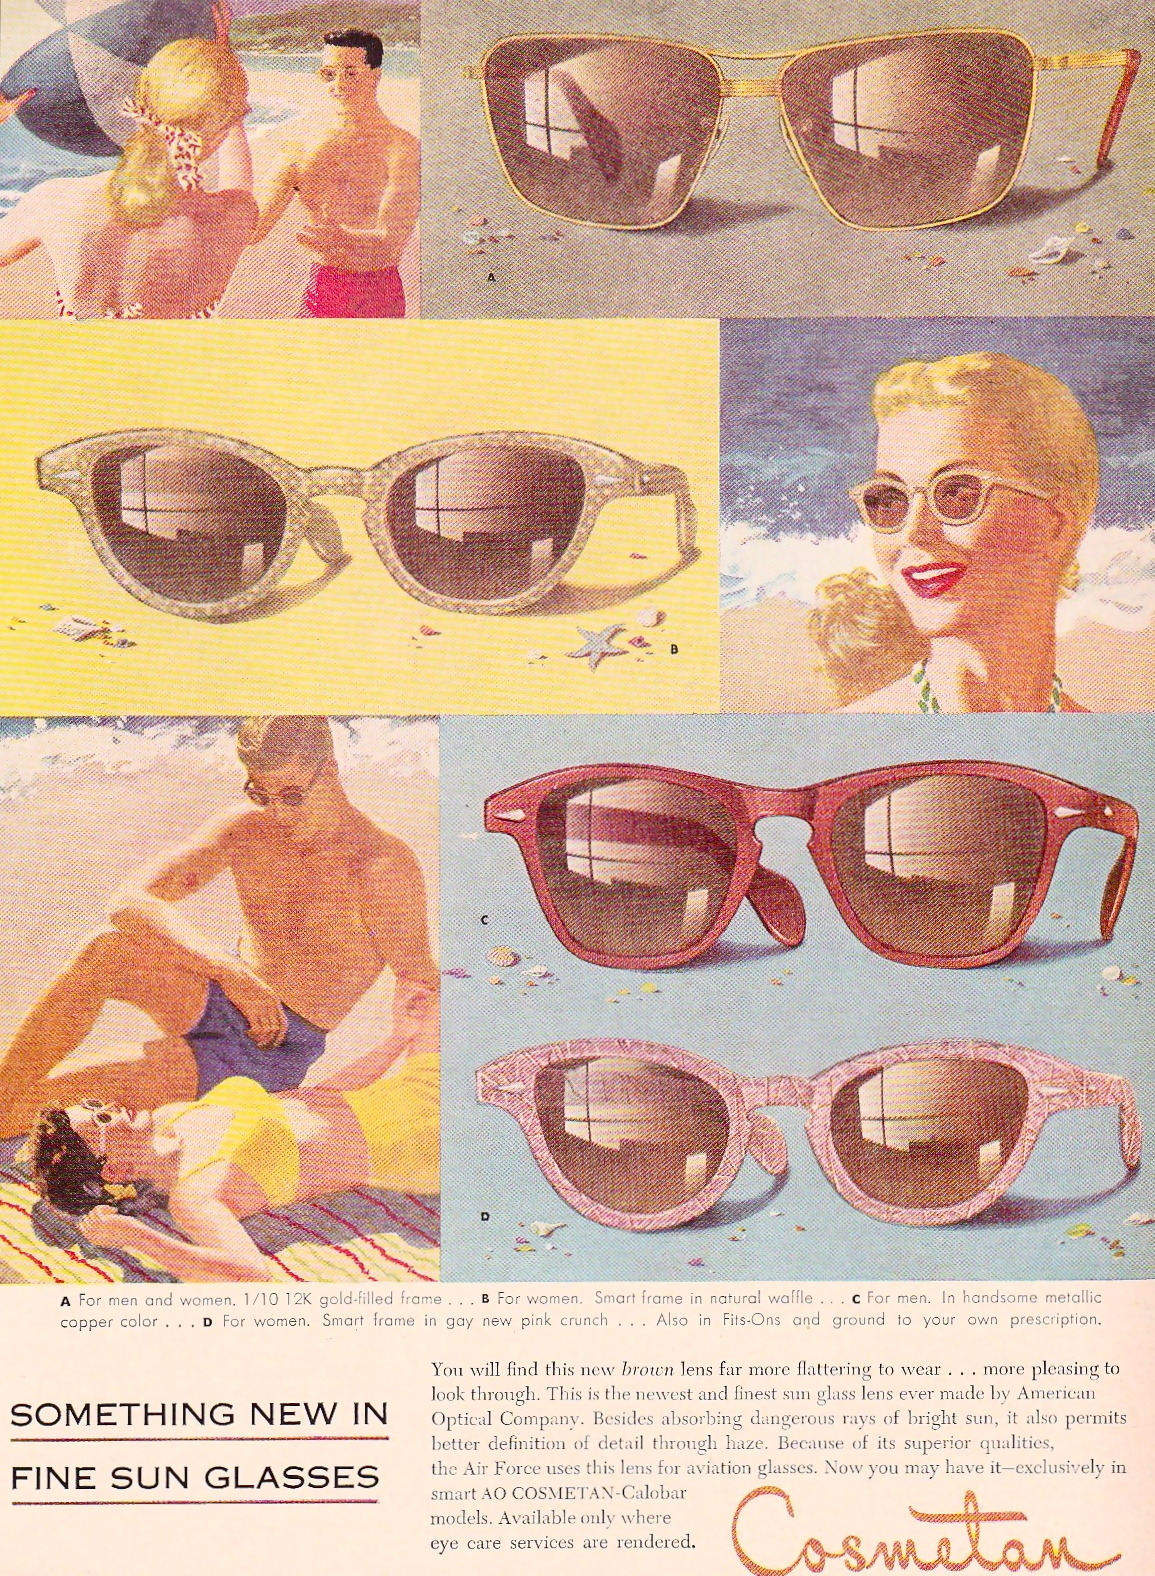 theniftyfifties:  1952 Cosmetan sunglasses advertisement.